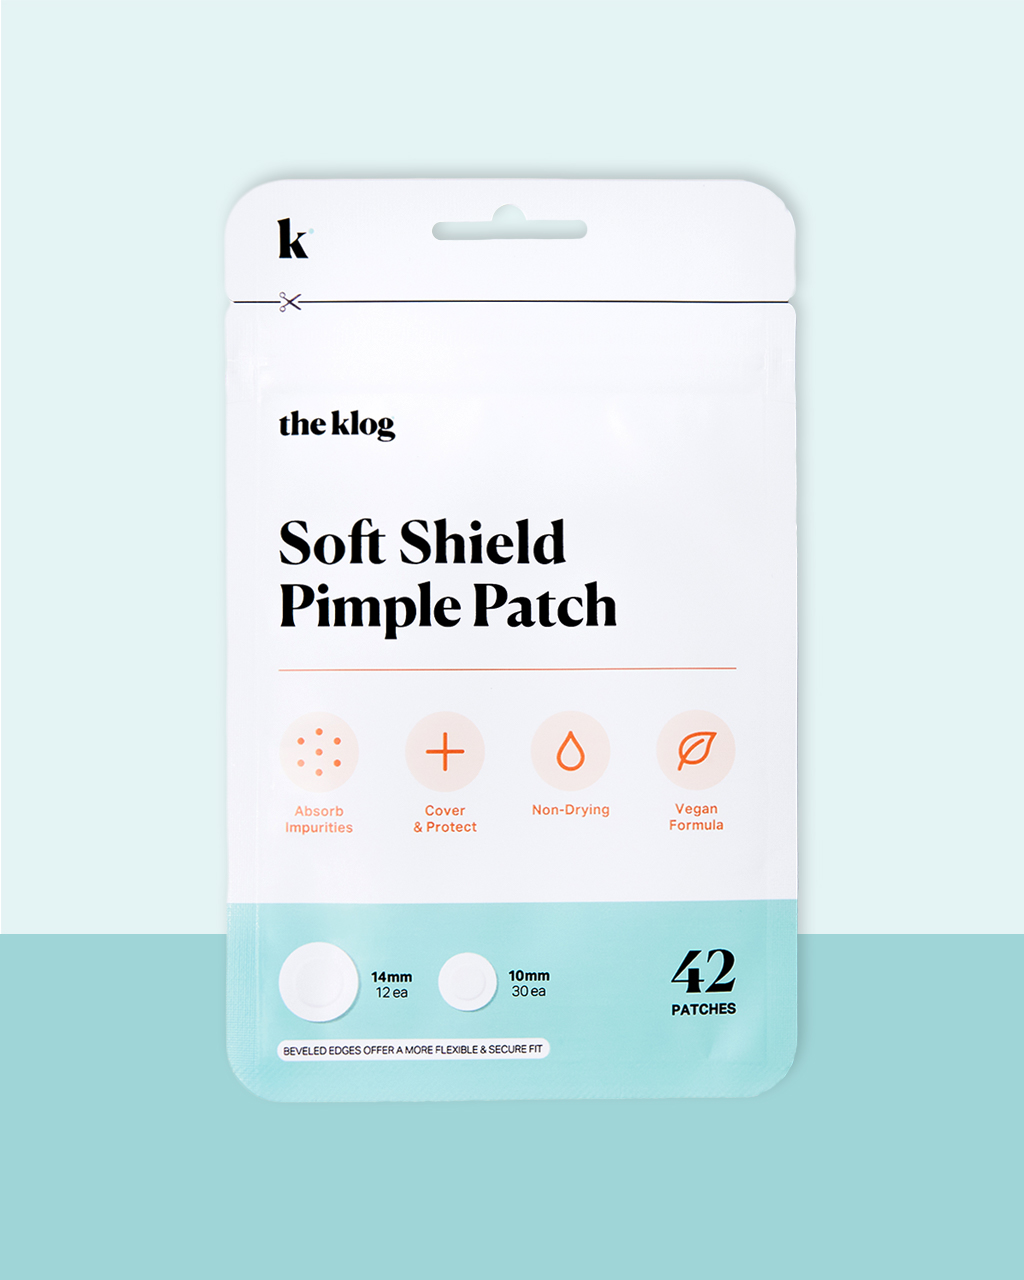 The Klog Soft Shield Pimple Patch